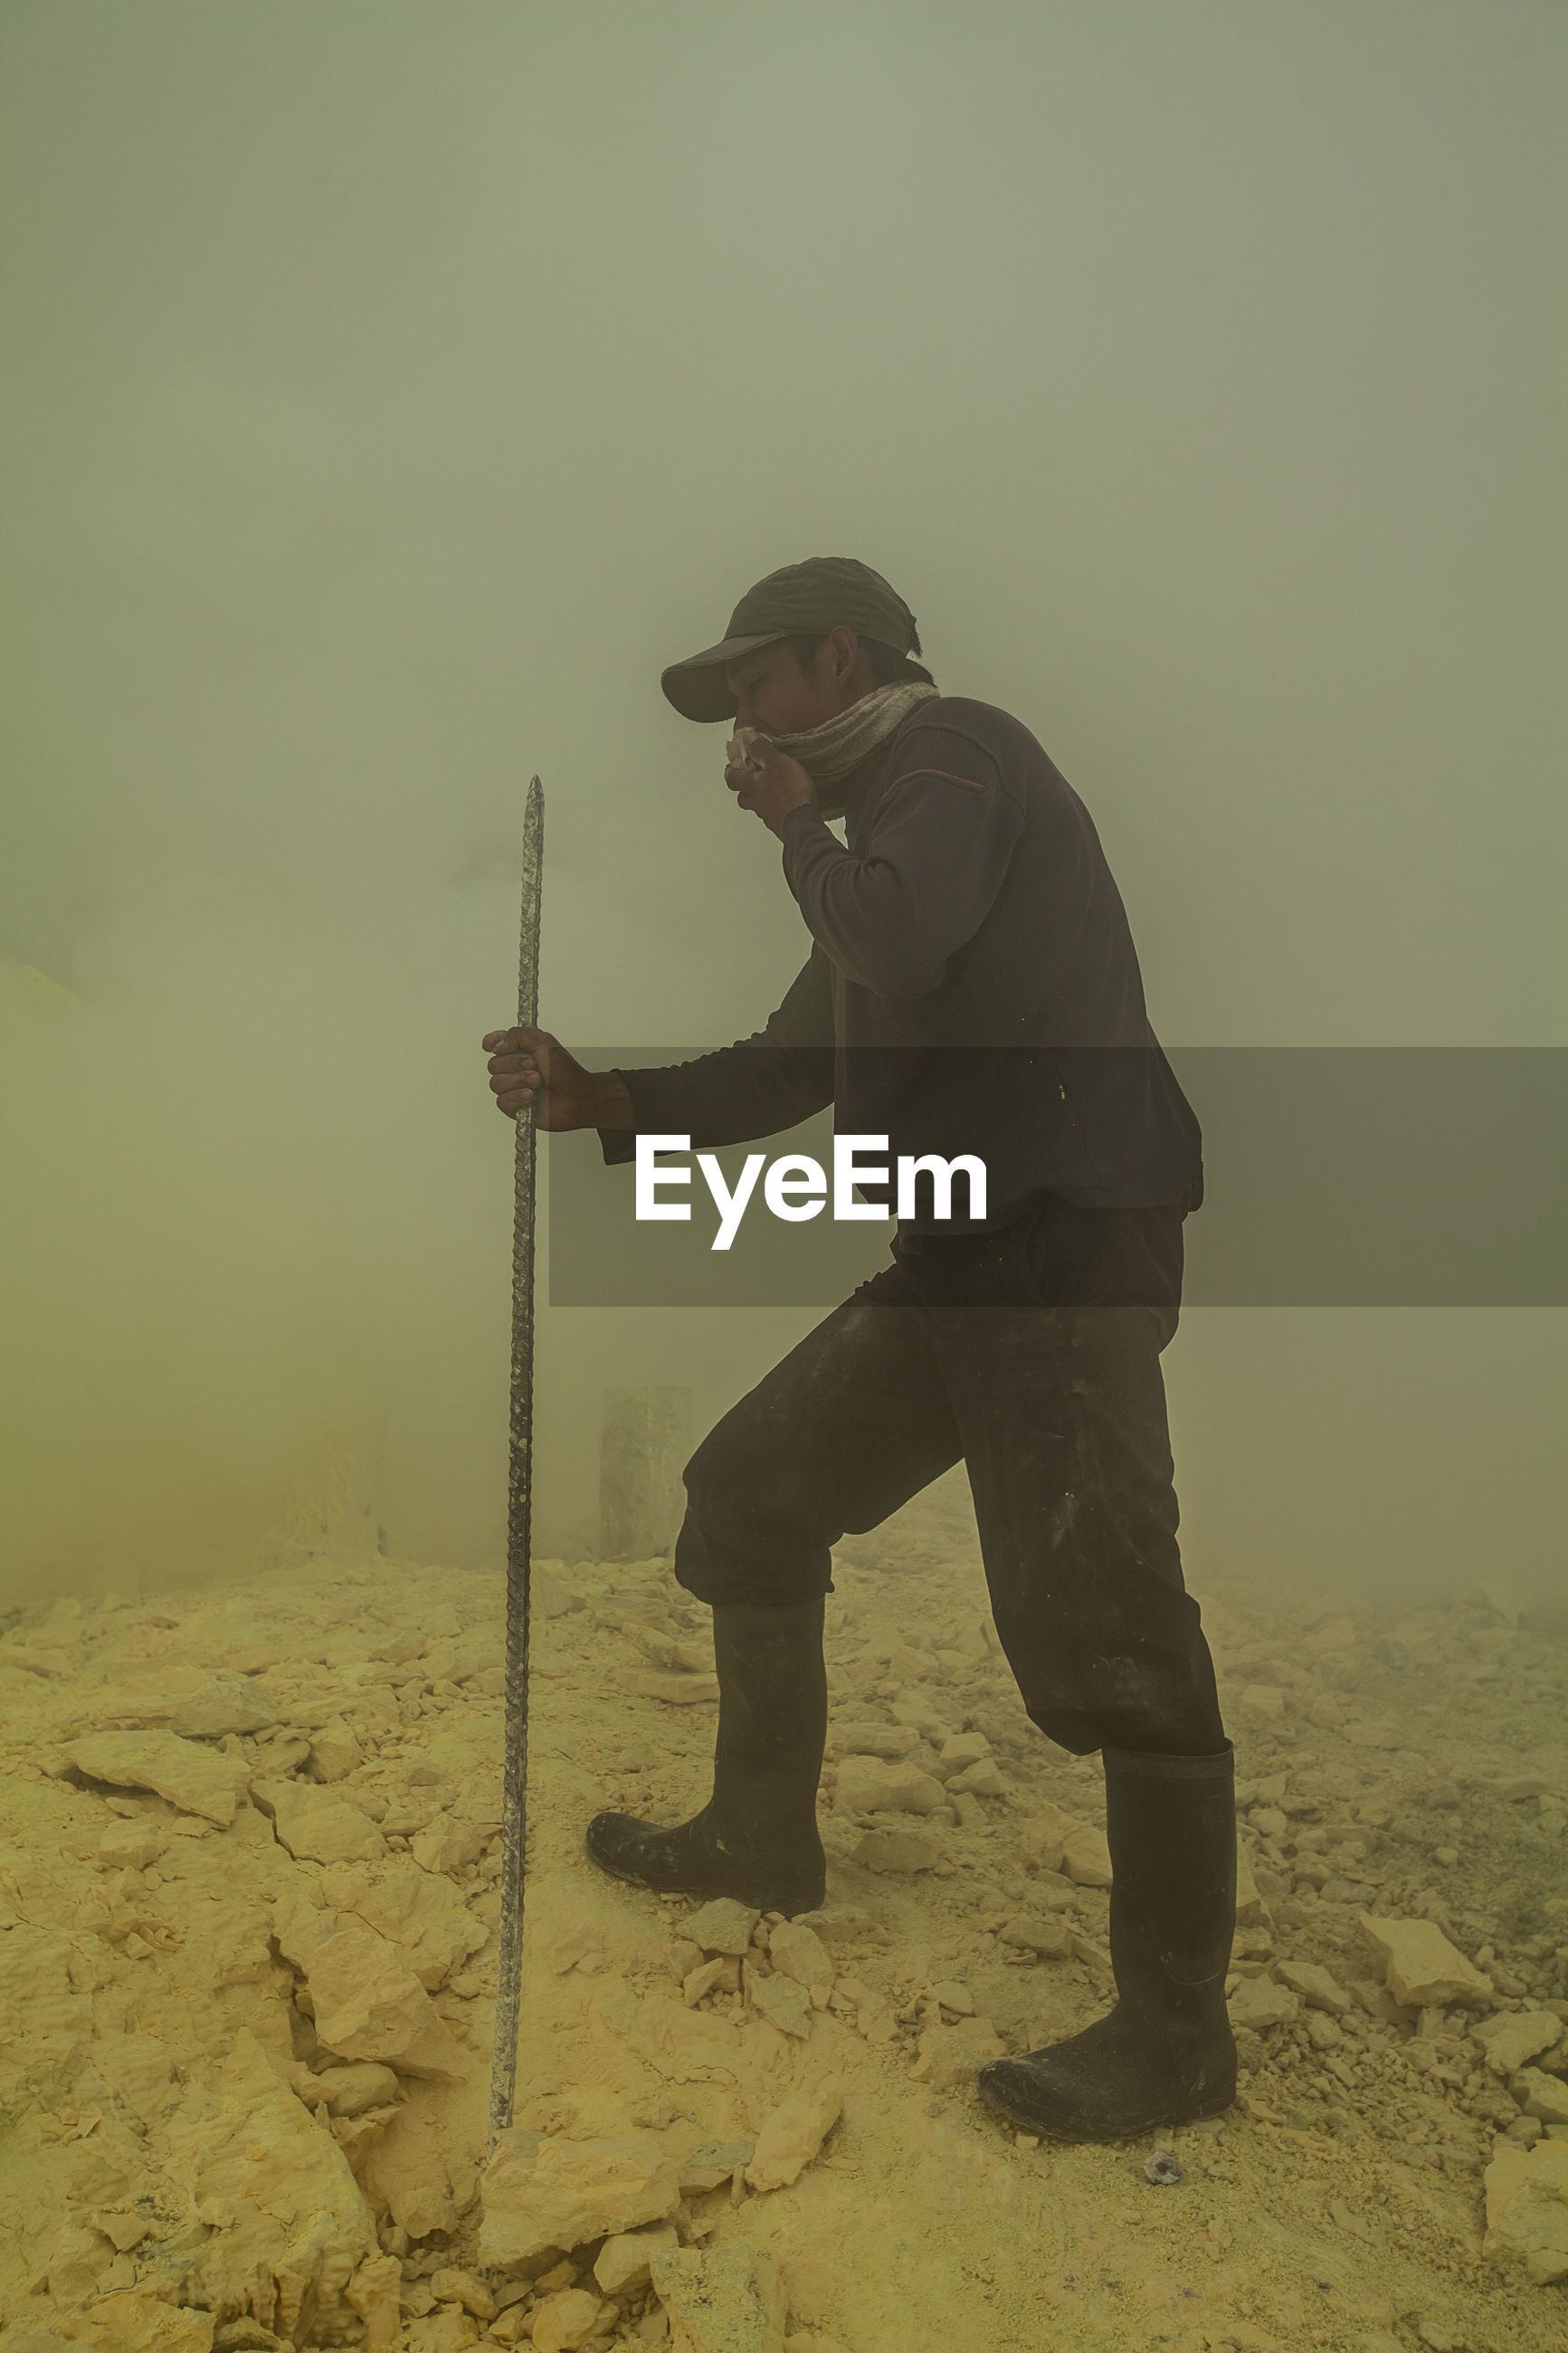 Manual worker on construction site in dusty environment